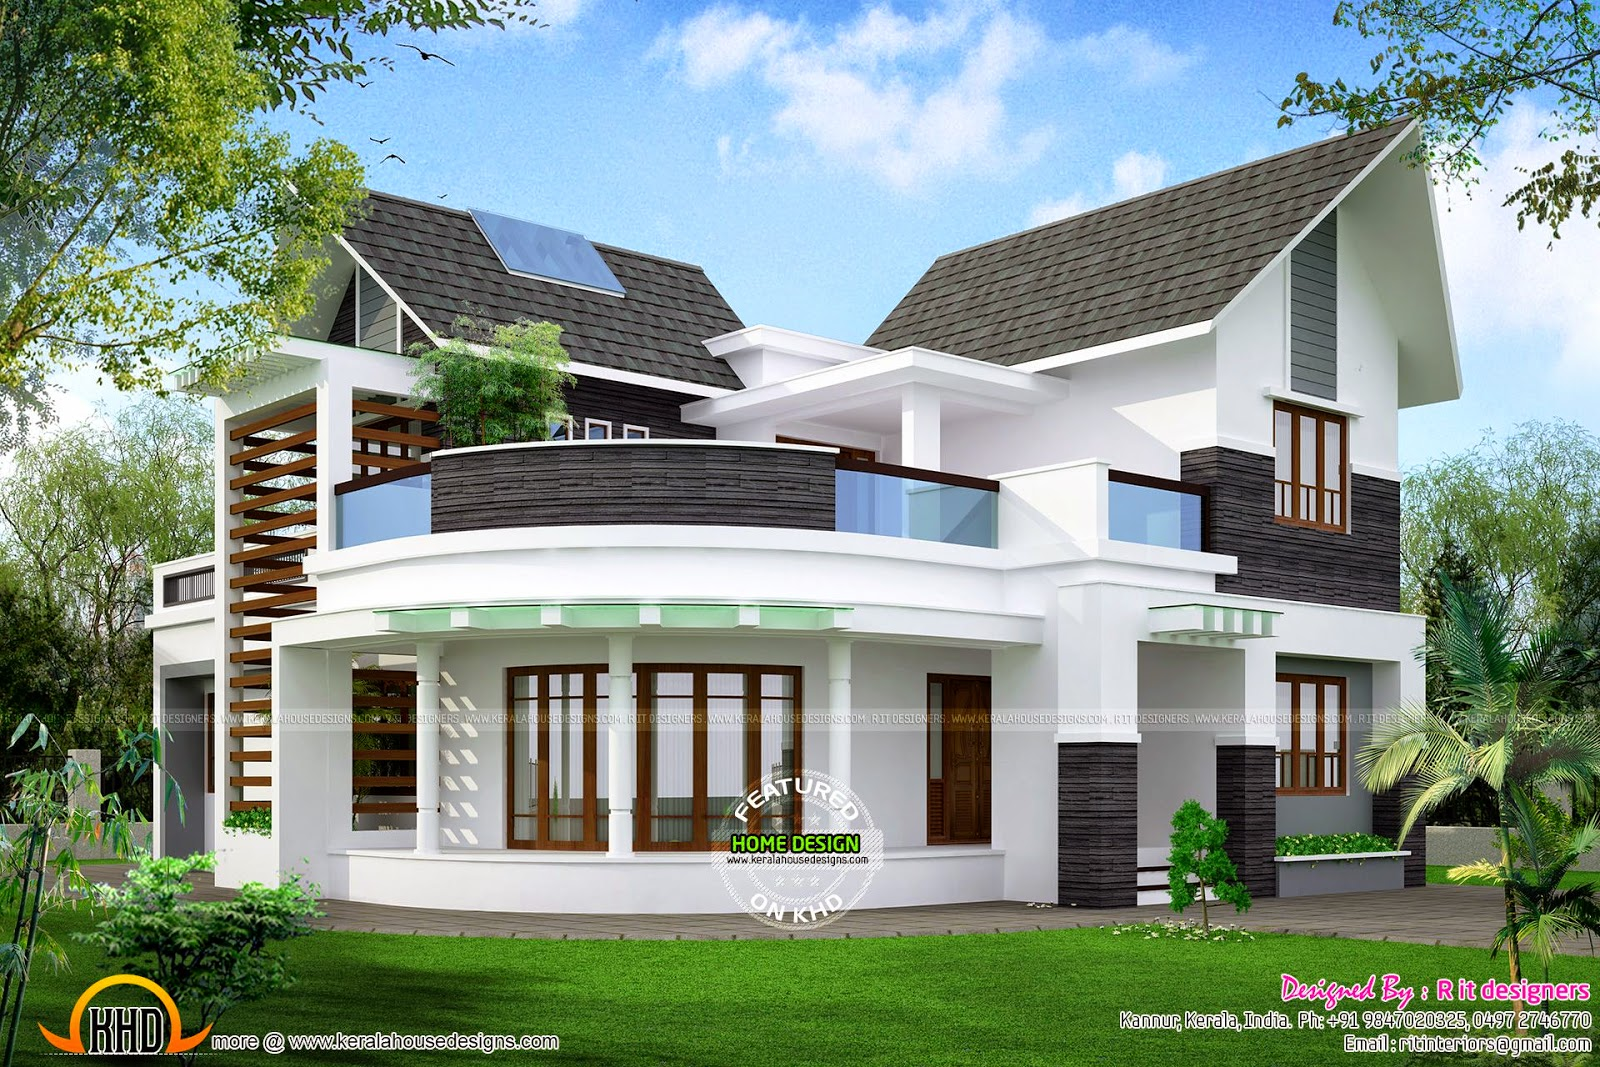 Modern unique 3 bedroom house design ground floor2 for Unique modern house designs